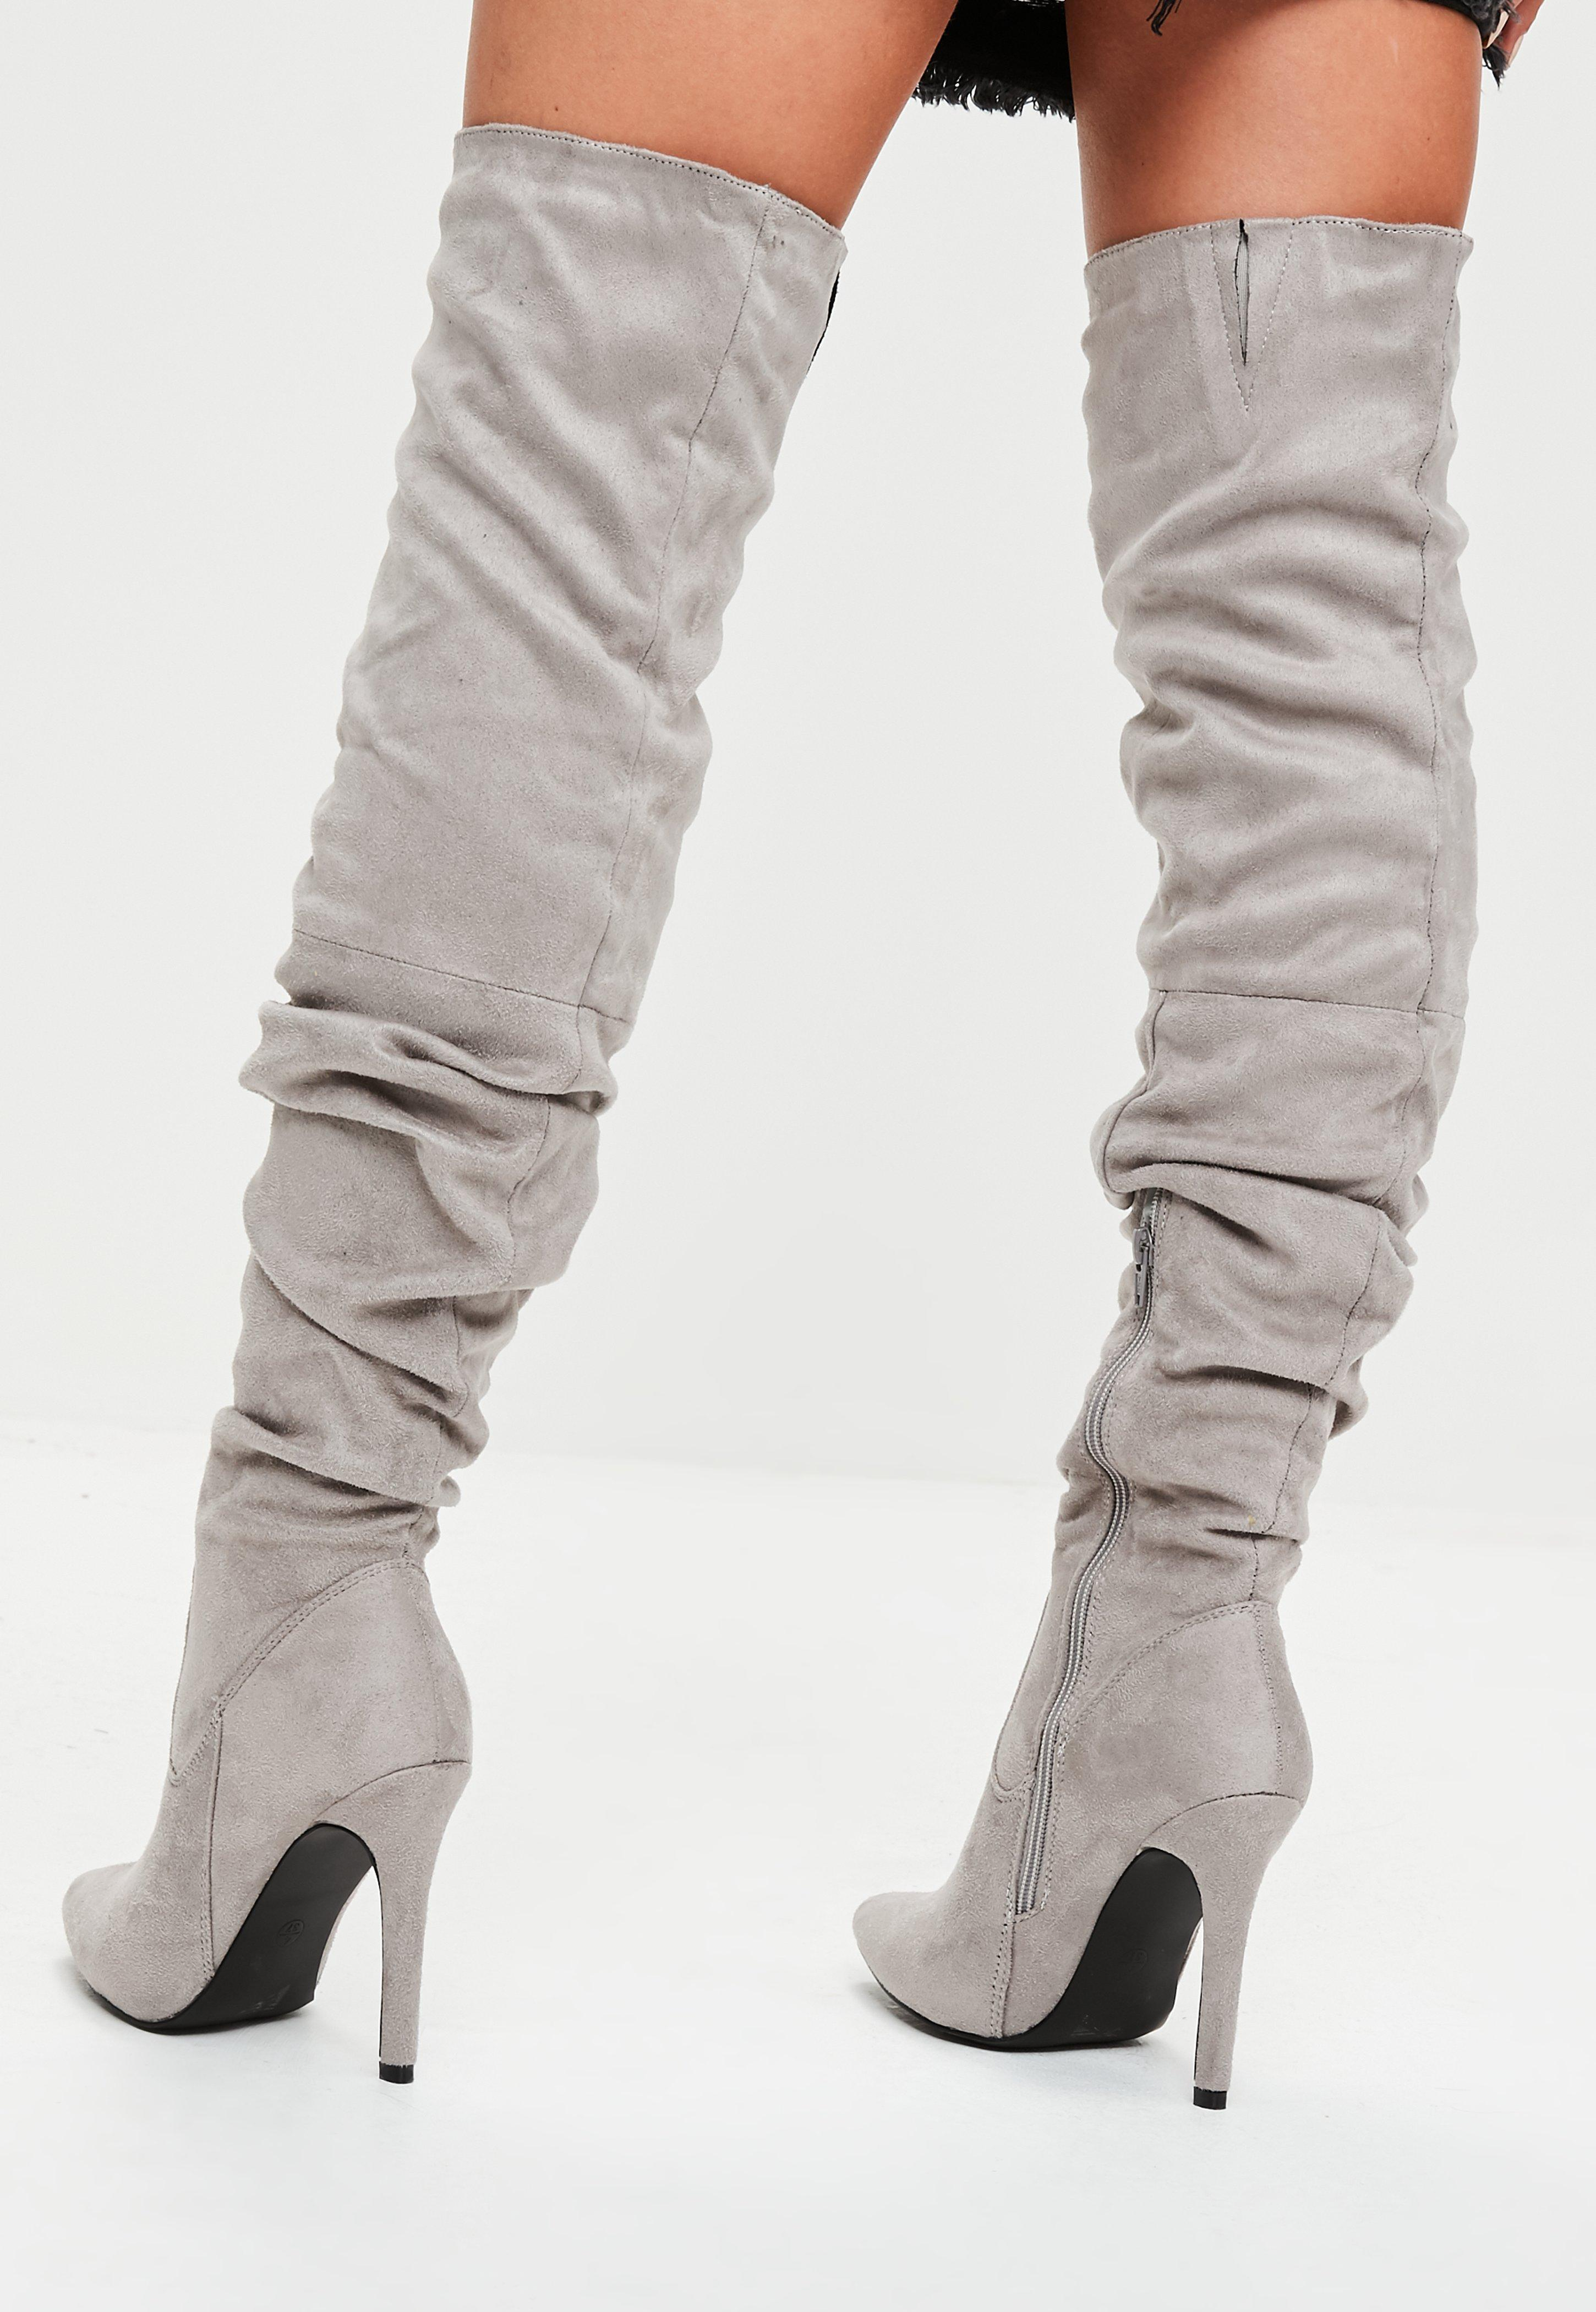 7526eb0f4c5 Lyst - Missguided Grey Faux Suede Over The Knee Ruched Boots in Gray